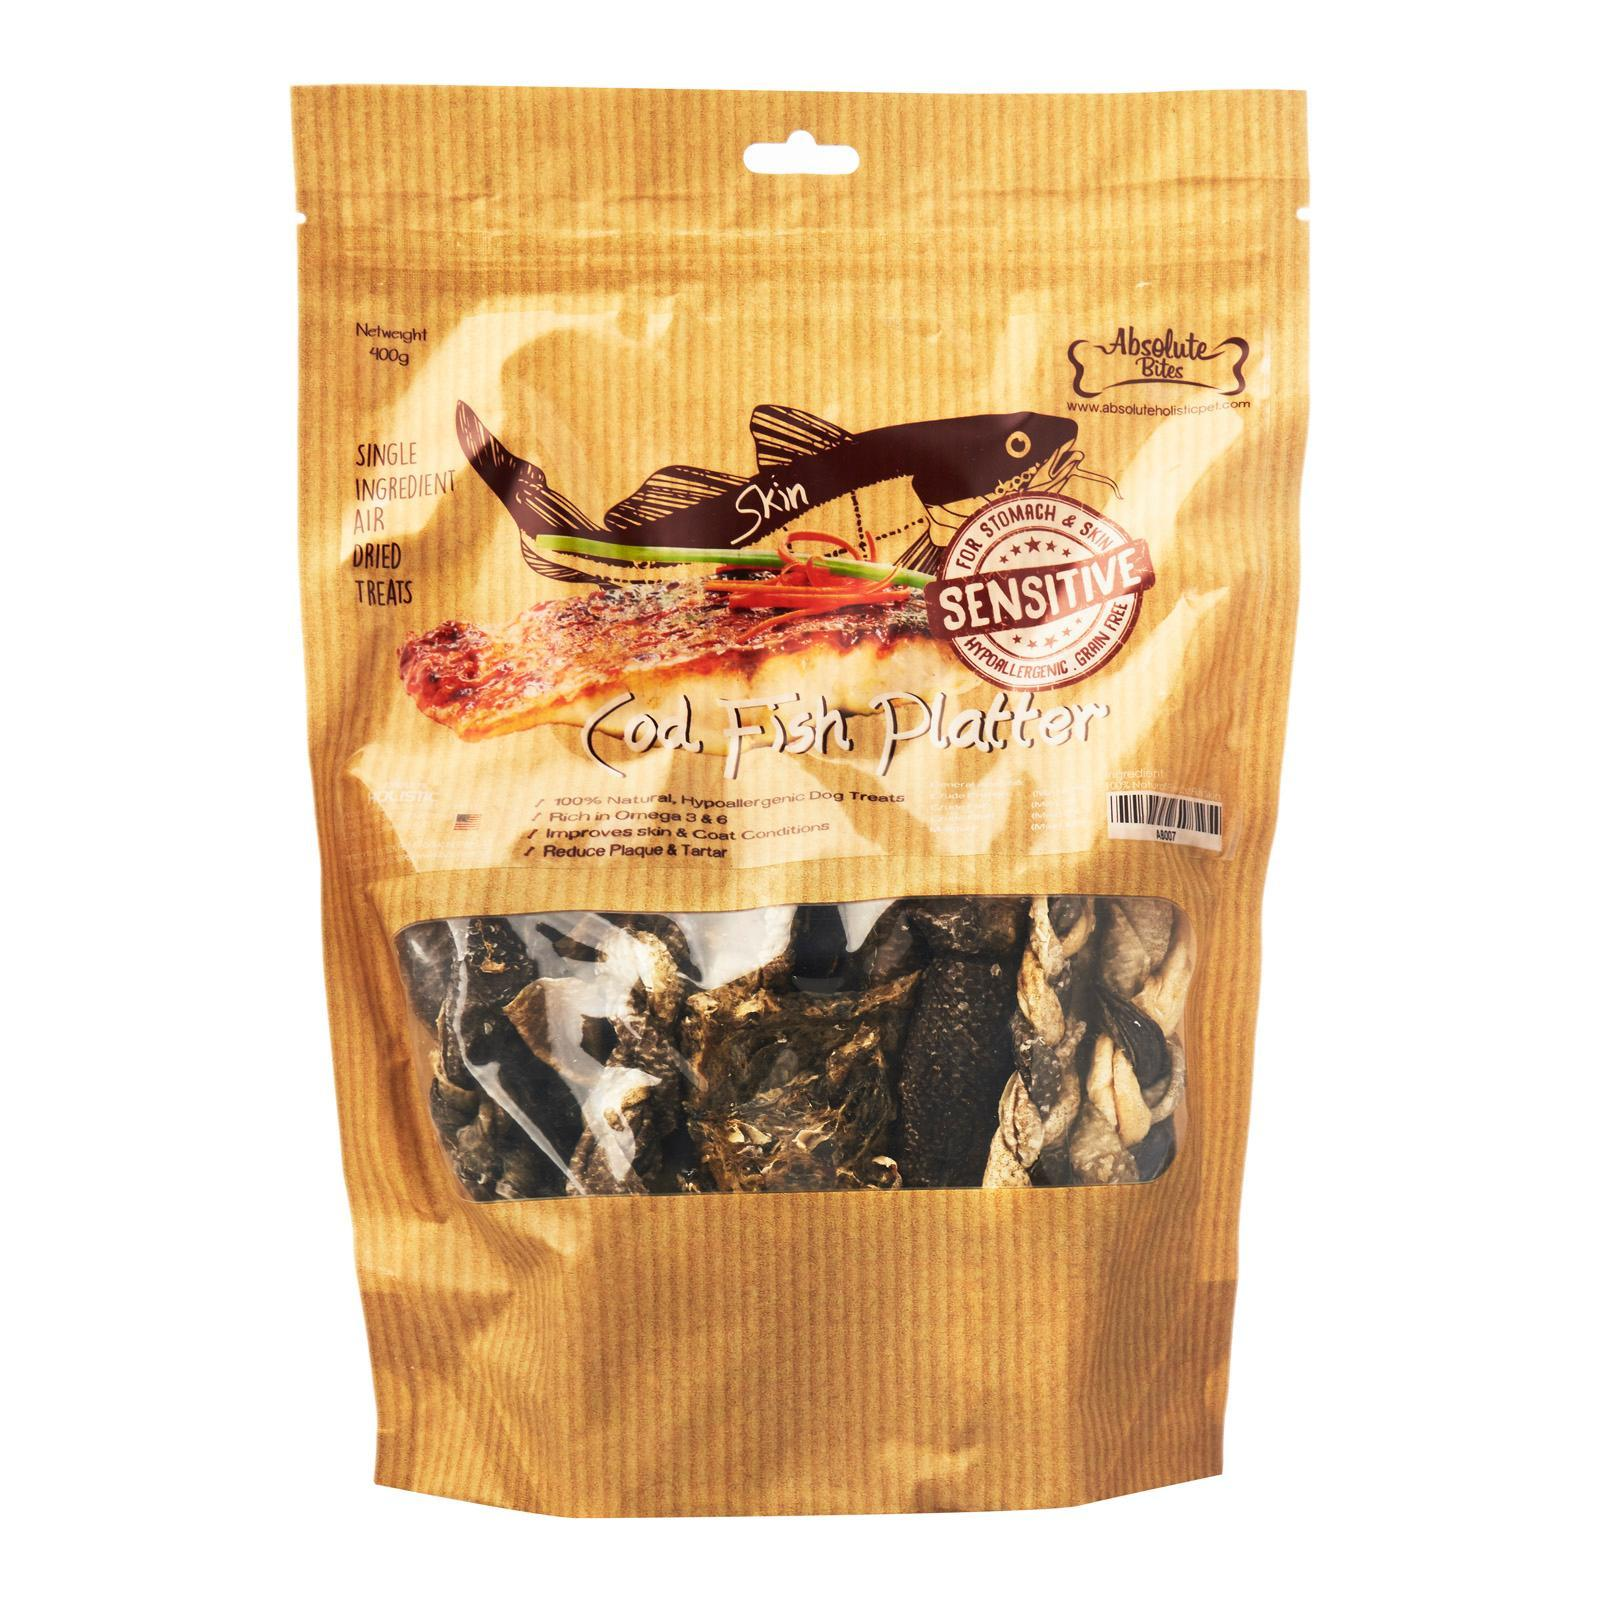 Absolute Bites Air Dried Cod Fish Platter 400g Dog Treats